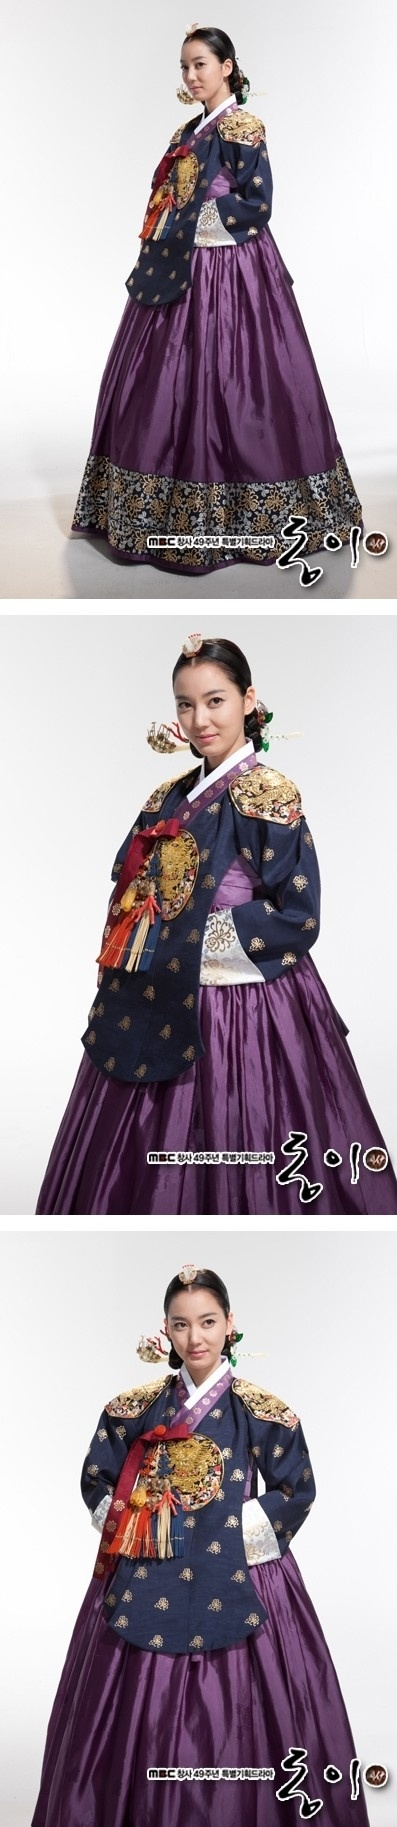 Korea, Joseon Dynasty, Hanbok worn by Queen with Dang'ui  type blouse